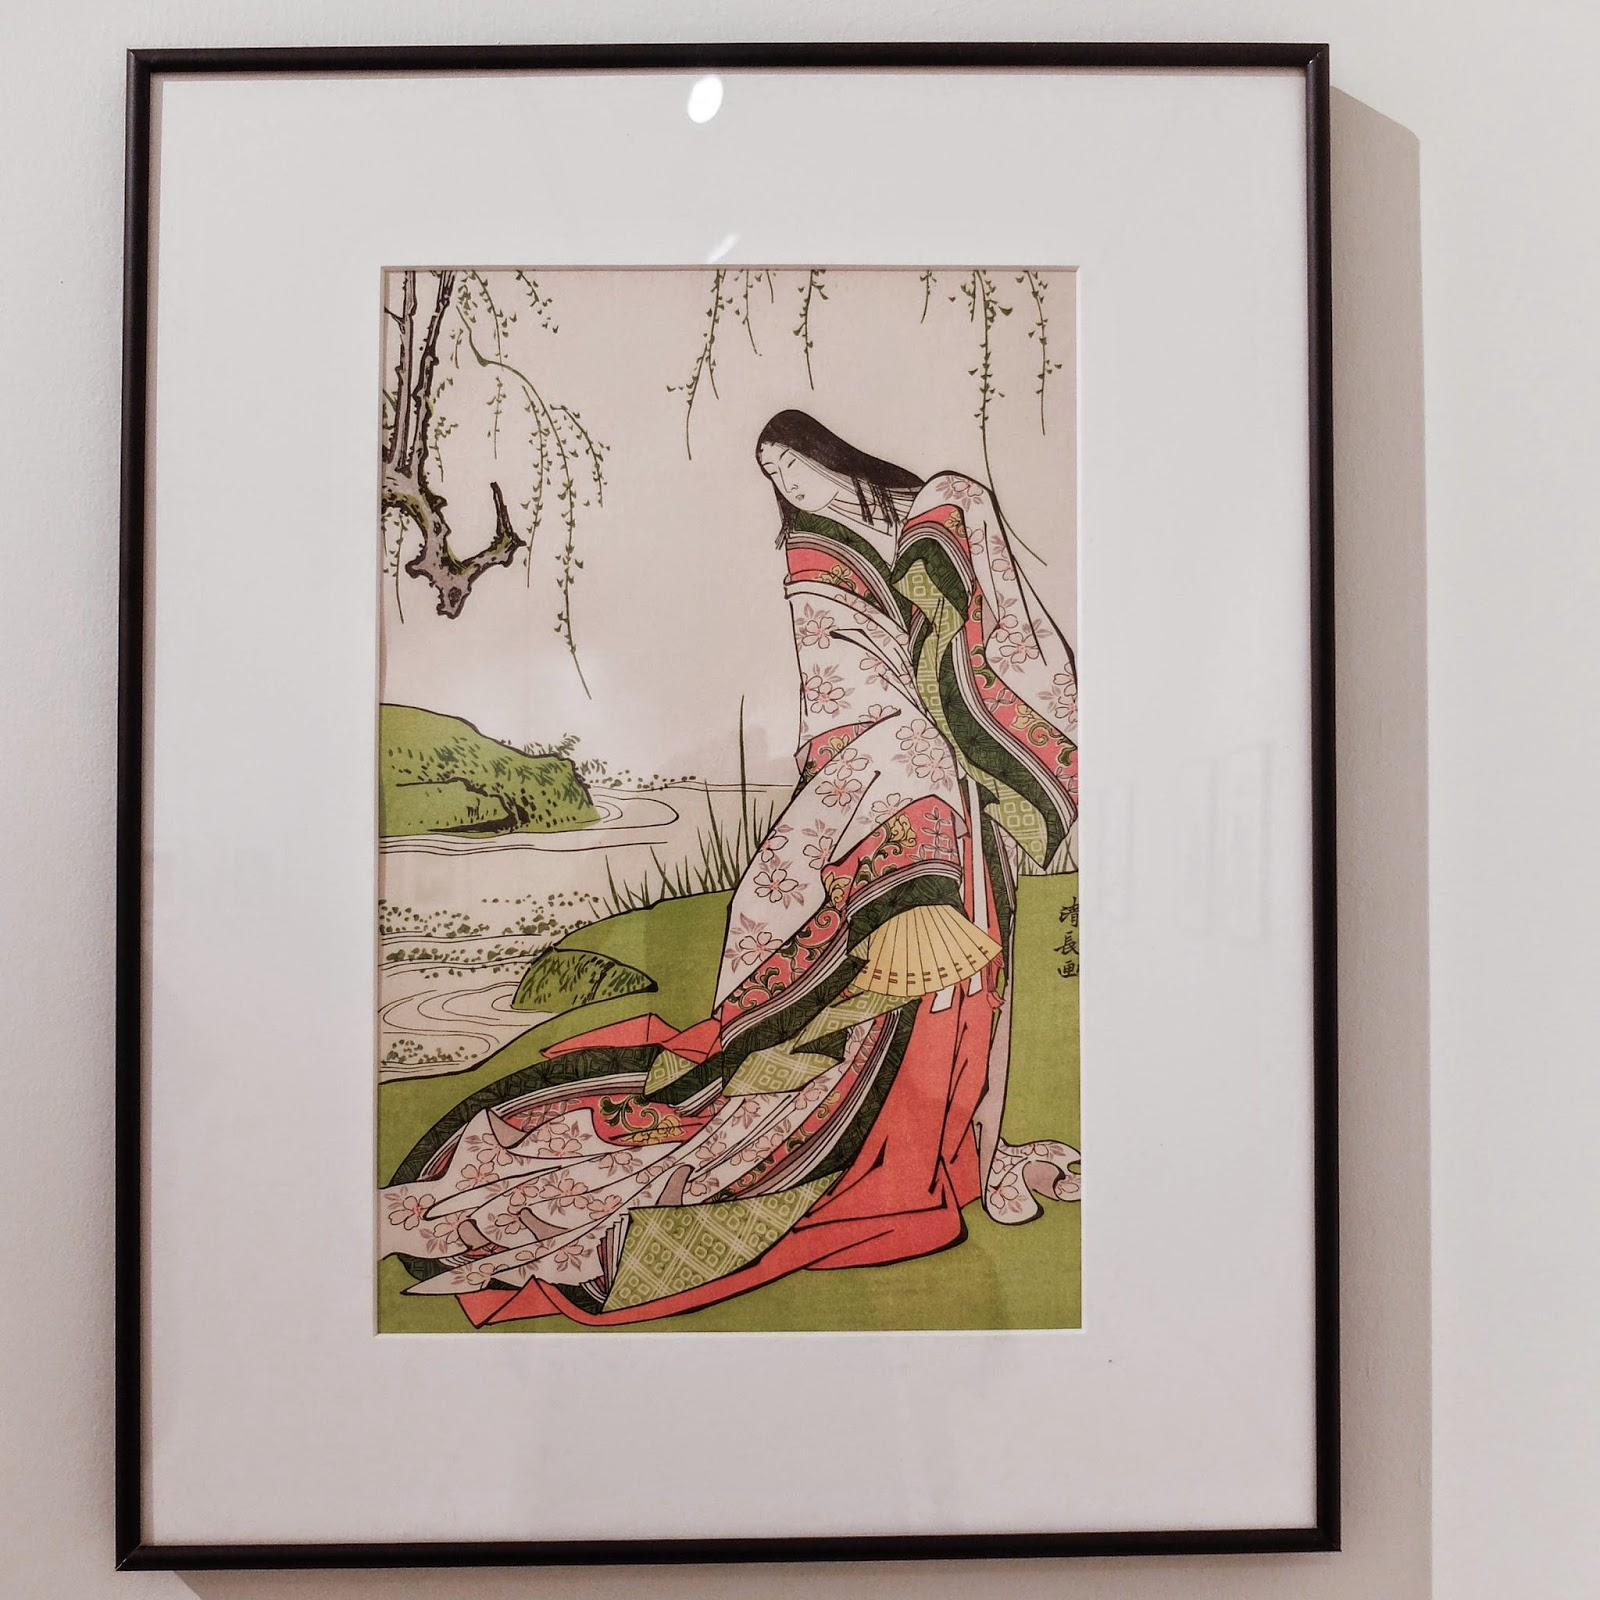 Ukiyoe Portraits exhibit - The courtlady Ono no Komachi by Kiyonaga Torii